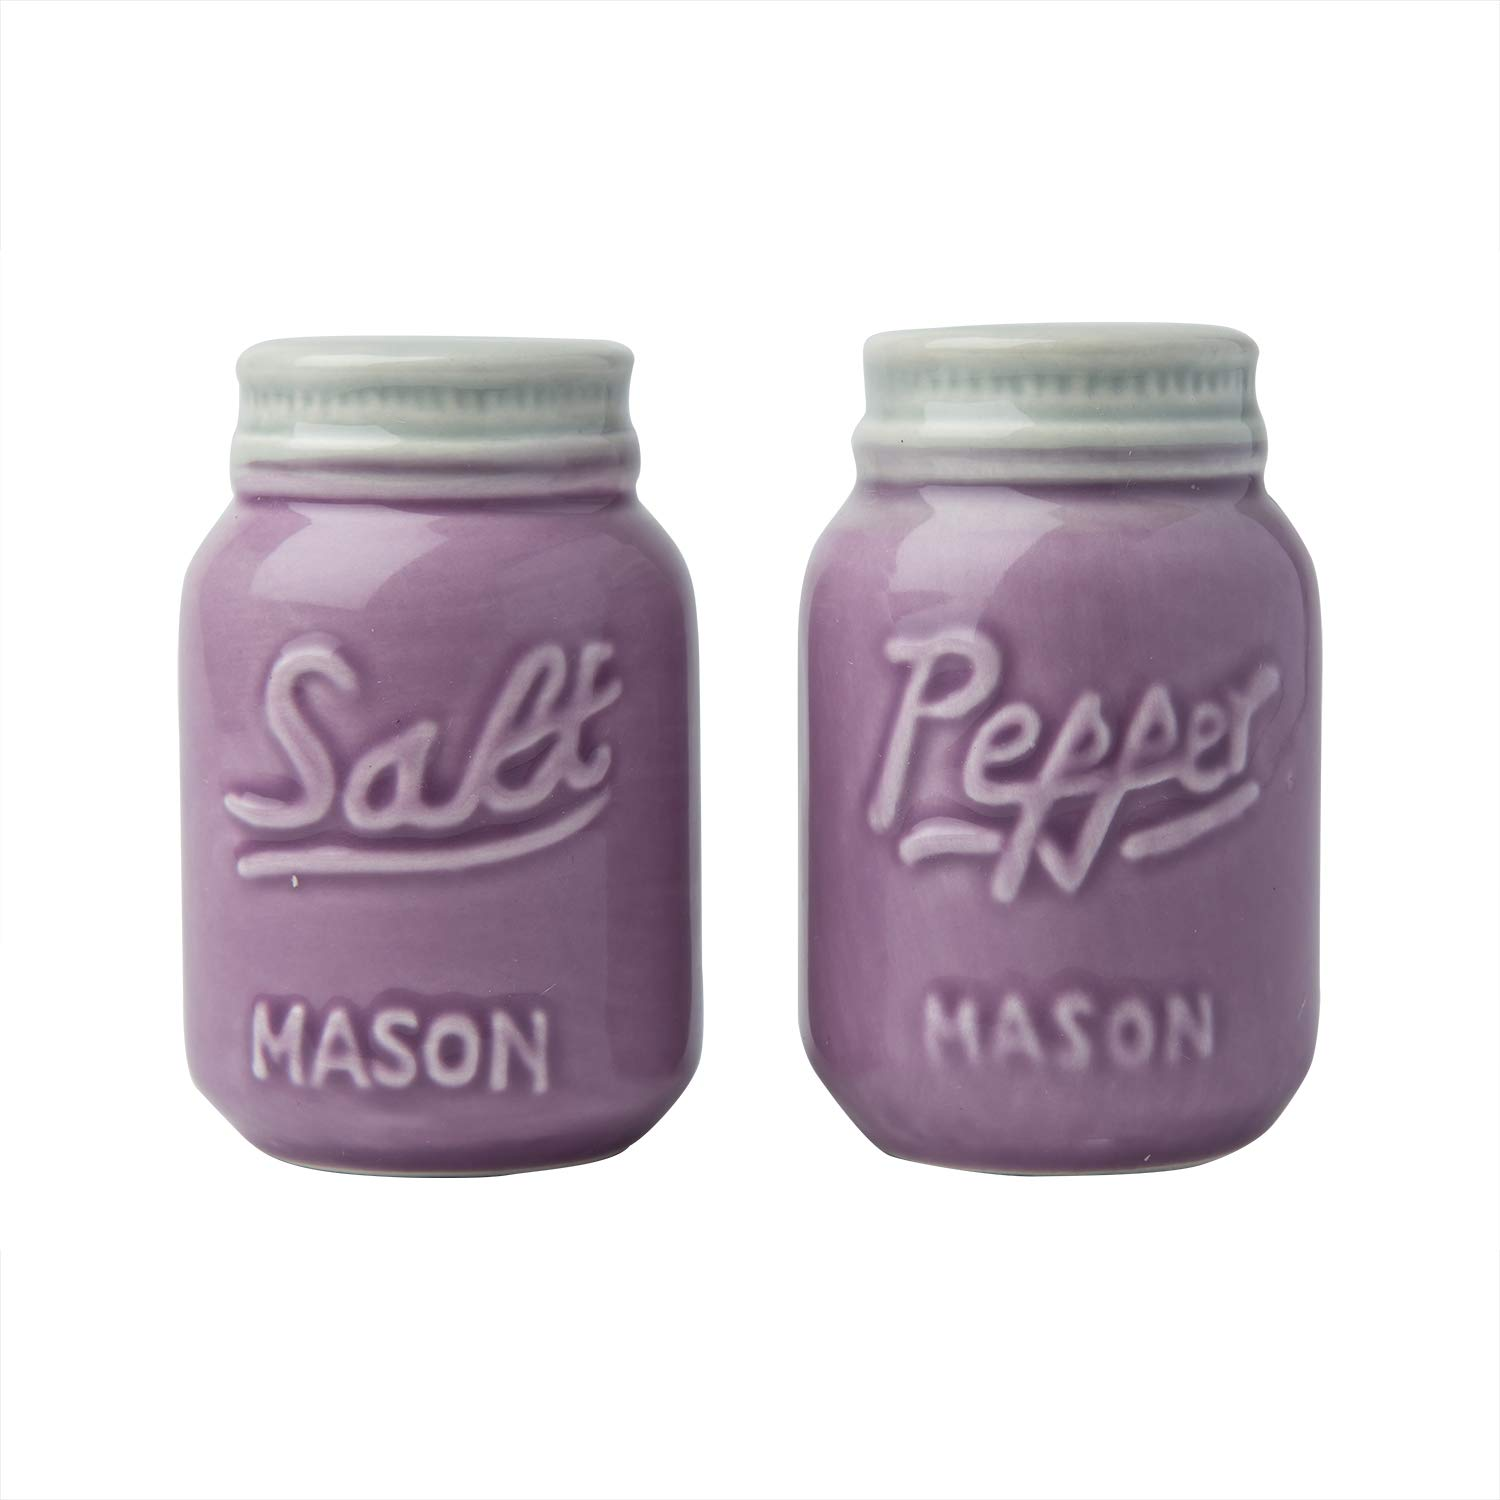 Comfify Vintage Mason Jar Salt & Pepper Shakers Adorable Decorative Mason Jar Decor for Vintage, Rustic, Shabby Chic - Sturdy Ceramic in Grey - 3.5 oz. Cap. CER-0501-03-GY